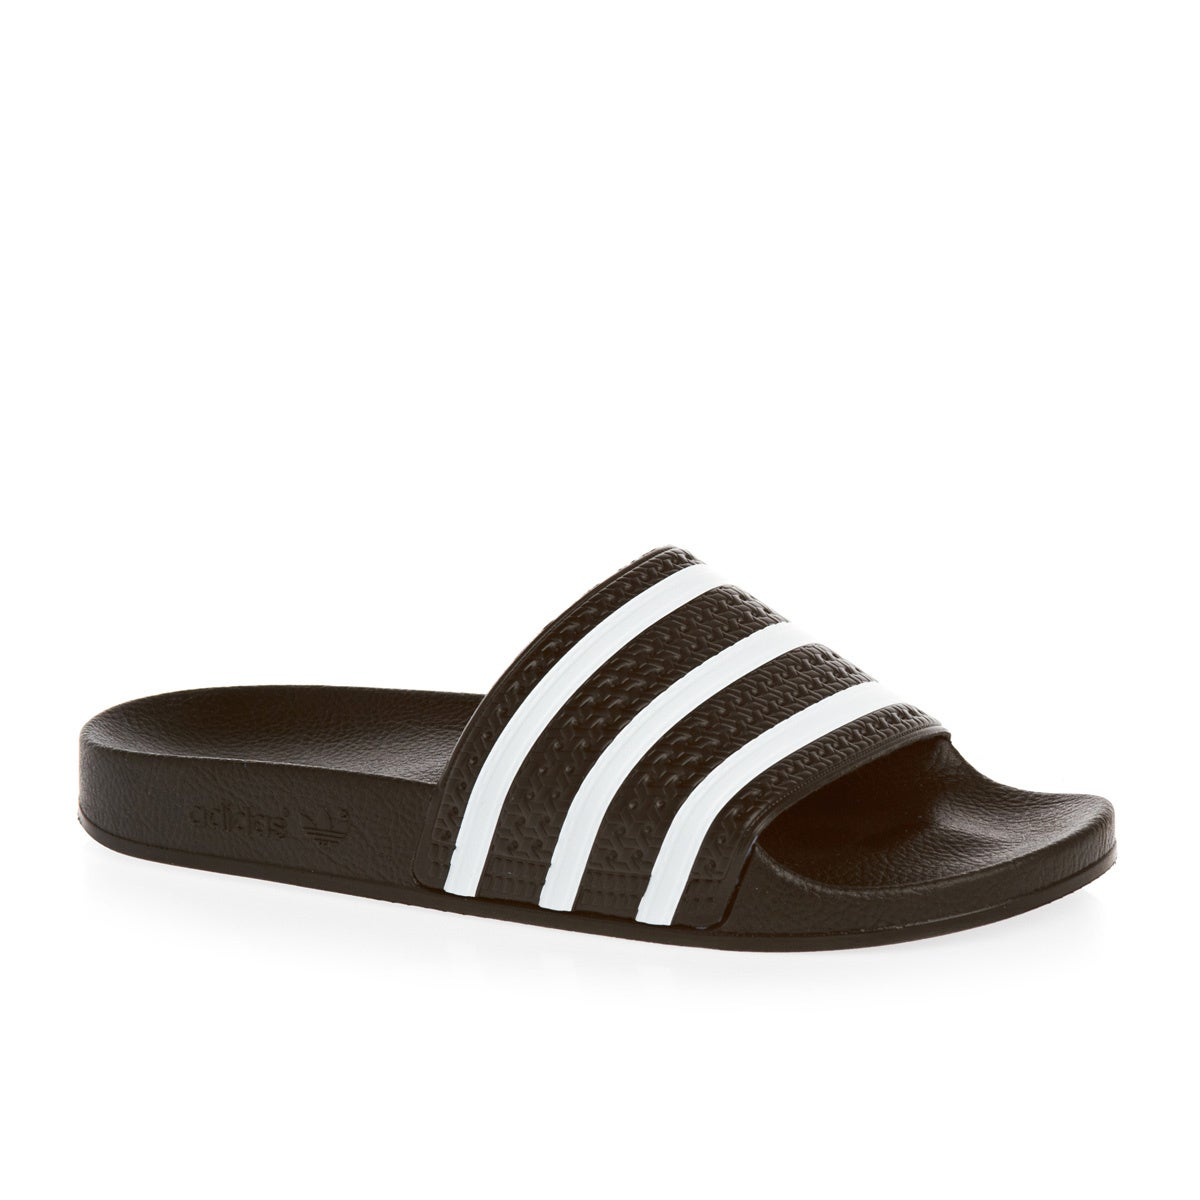 87f4cf037 Adidas Originals Adilette Slider Sandals available from Surfdome